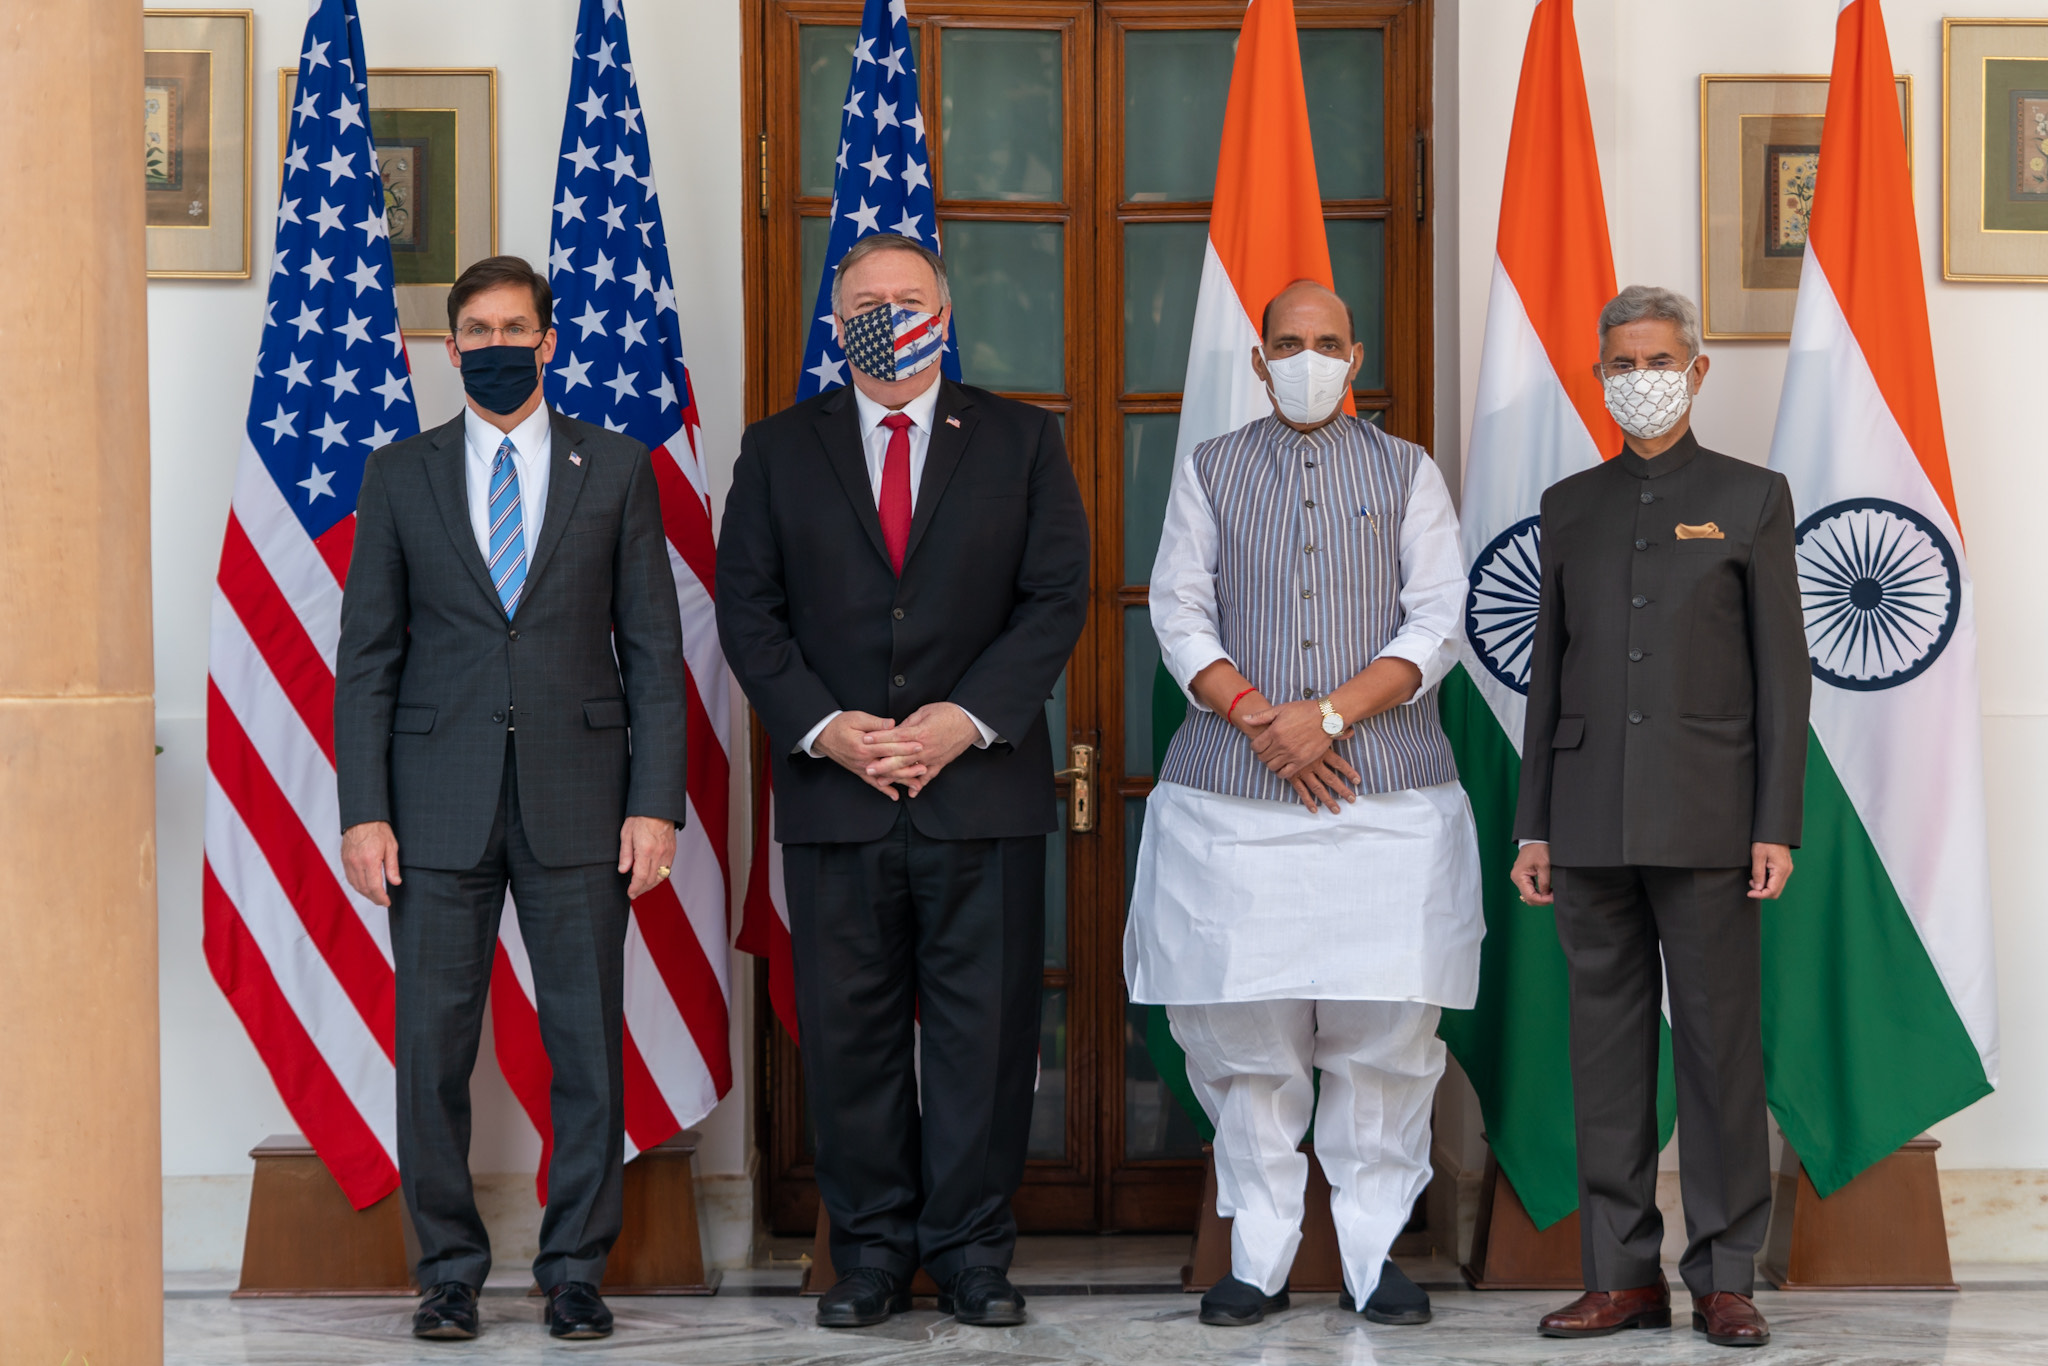 The growing strategic convergence between India and the US also saw the two sides finally inking the landmark Basic Exchange and Cooperation Agreement (BECA)